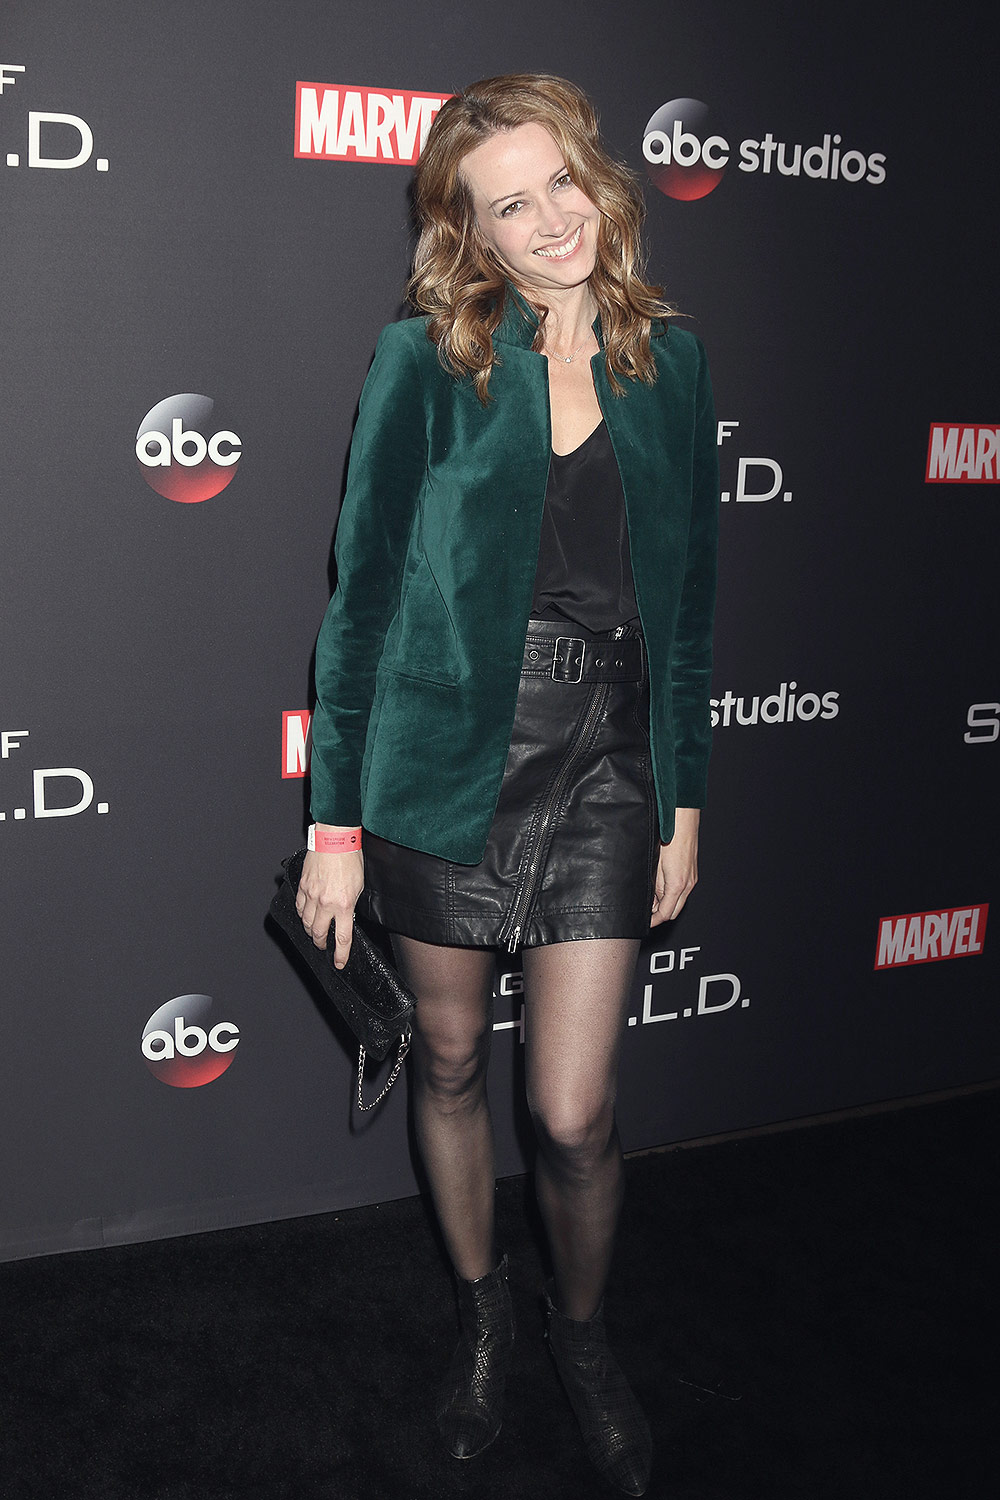 Amy Acker attends The 100th episode celebration of 'Agents of S.H.I.E.L.D.'